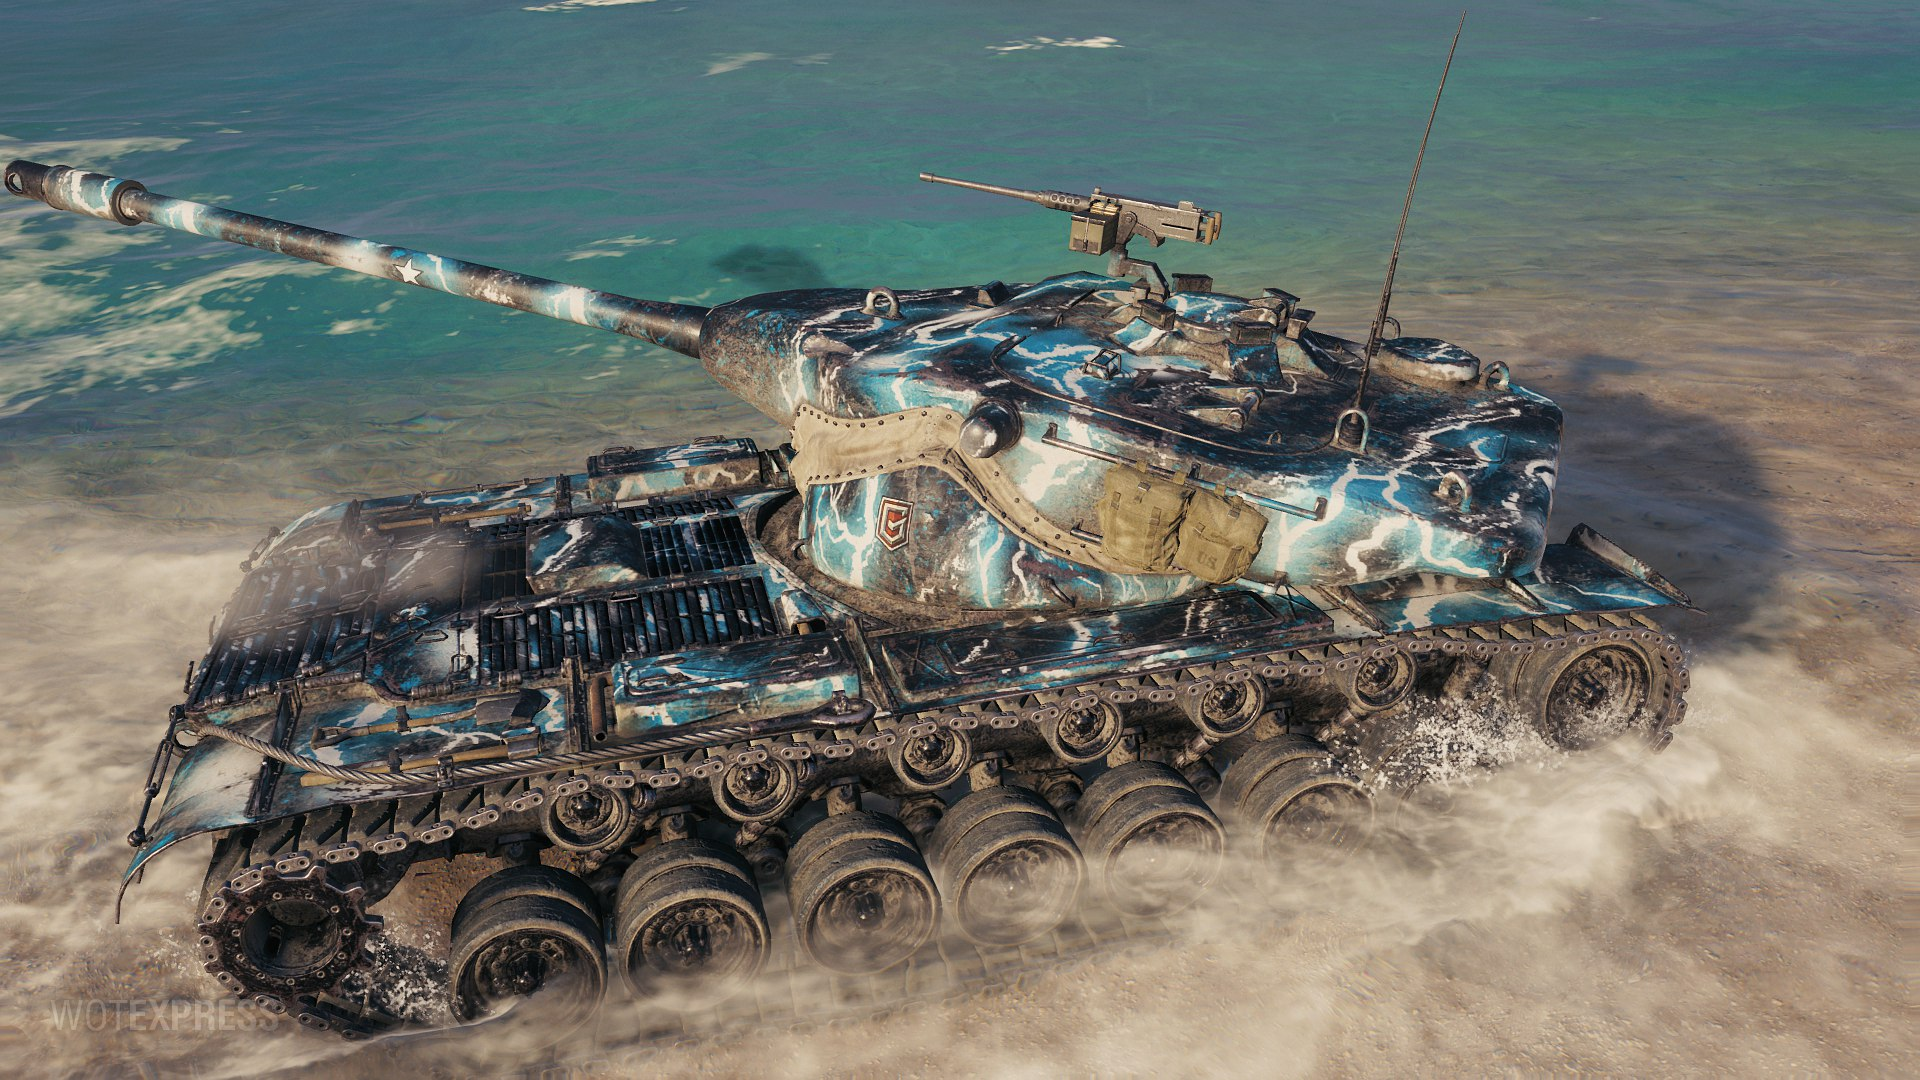 New clan wars camo set the armored patrol credit for pics wotexpress gumiabroncs Images